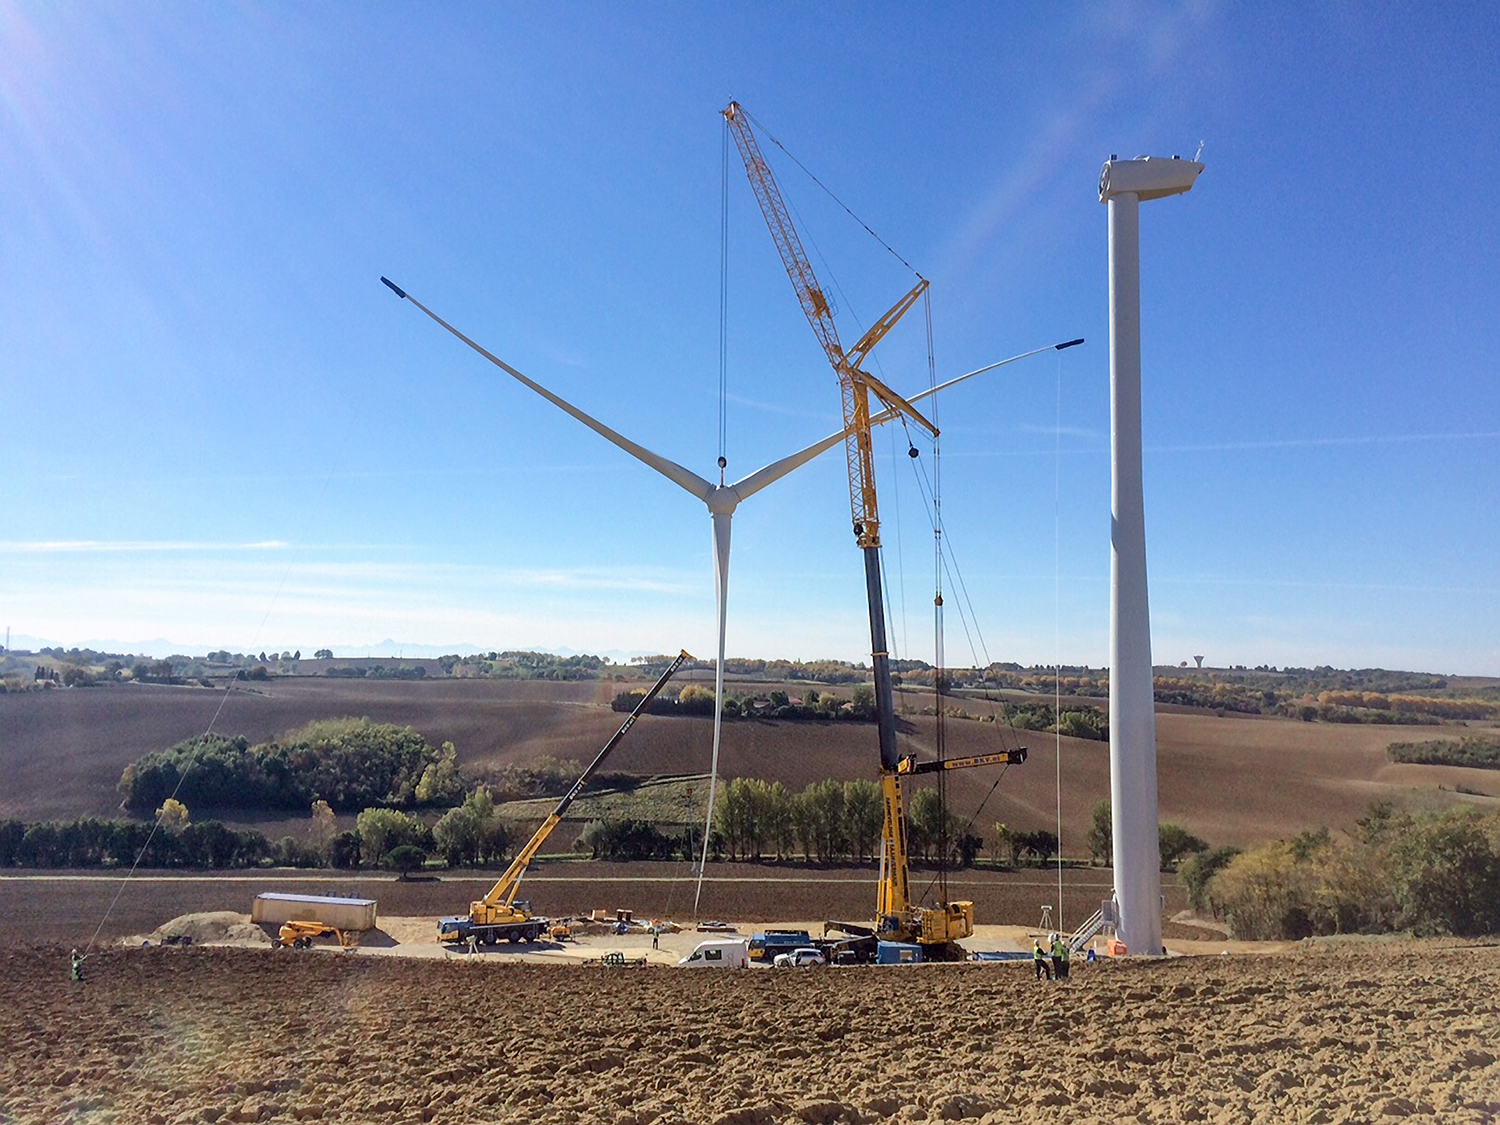 Wind turbine under construction at the Boralex wind farm at Calmont in the Occitanie region in France